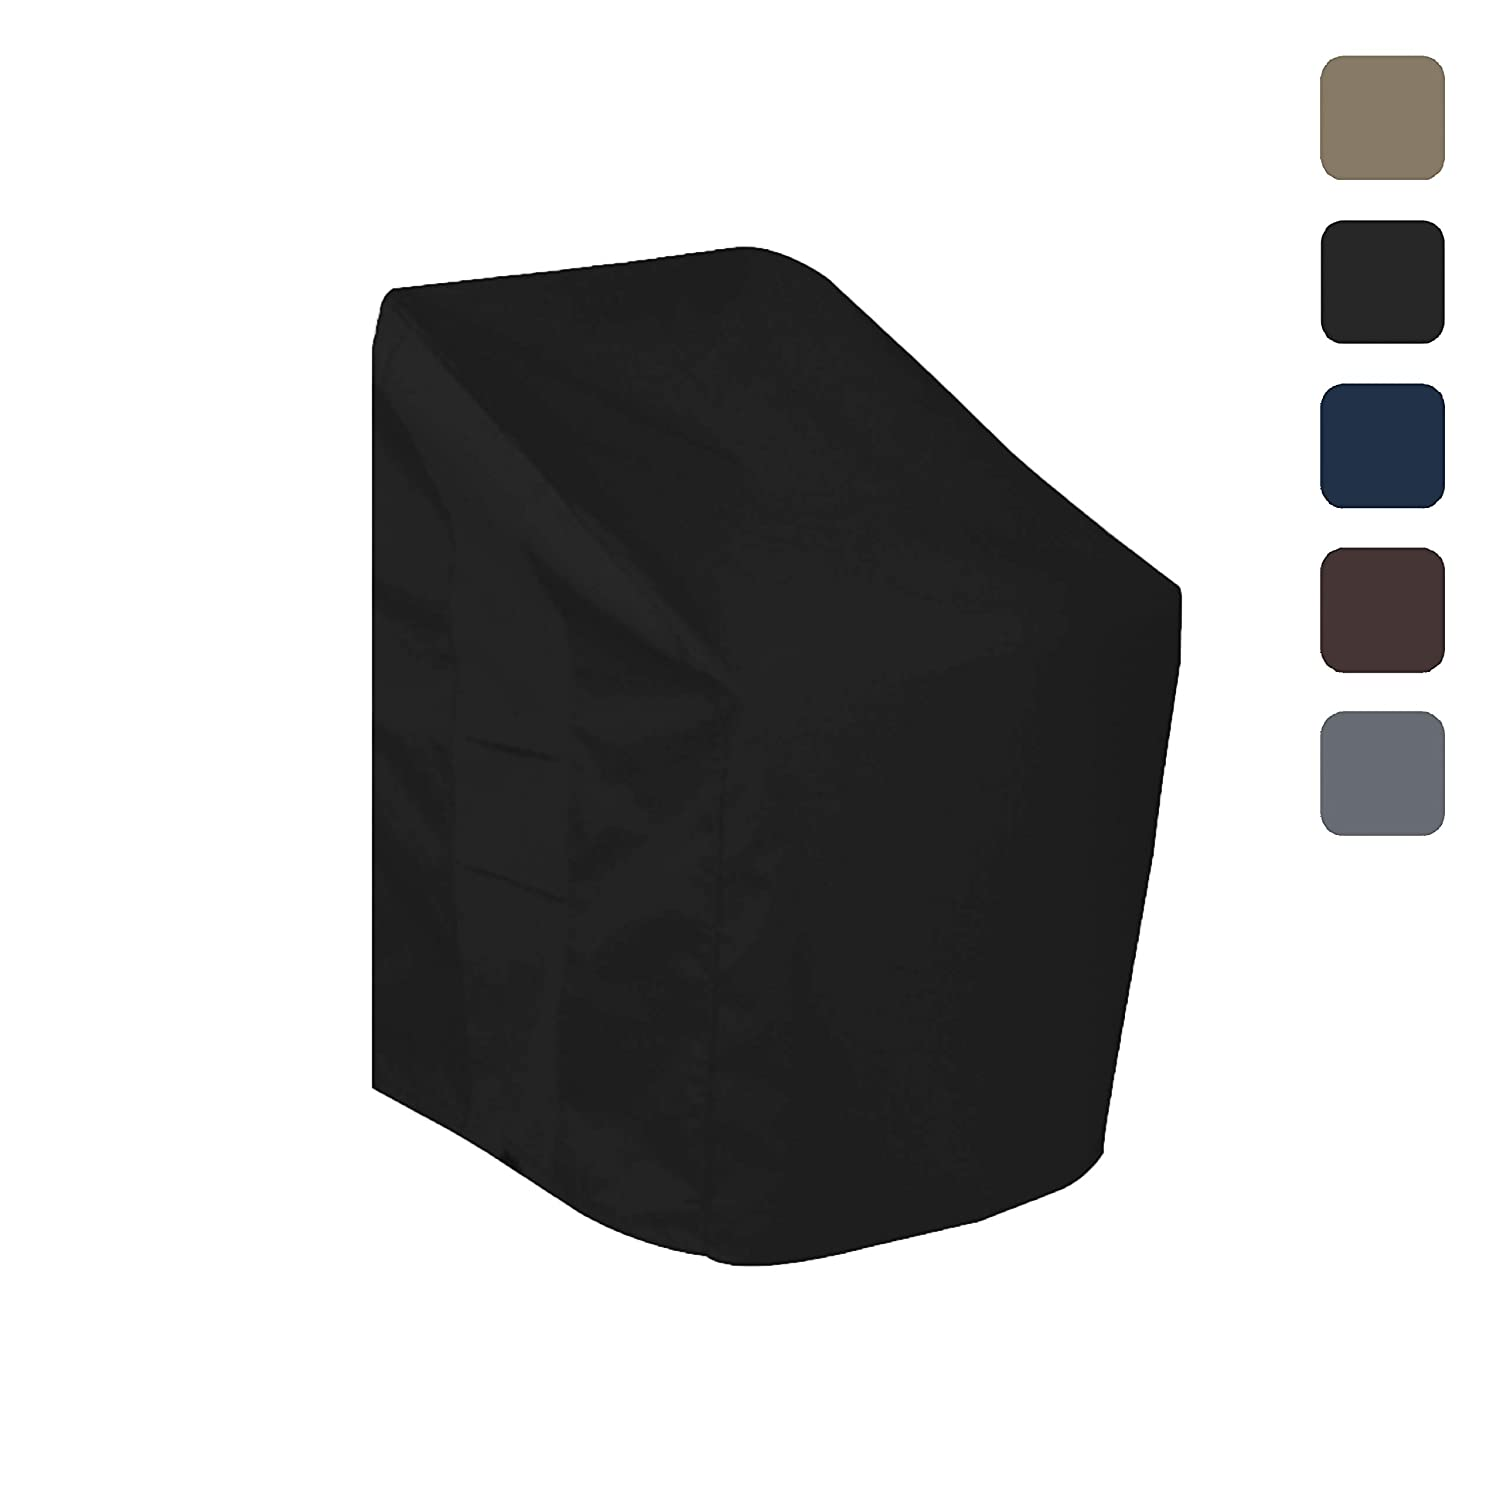 Patio Chair Cover - Waterproof, with Air vents, 100% UV-Resistant, 1000 D Both Side PVC Coated, Outdoor Furniture Stackable Chairs Covers with Drawstring for Snug fit to Withstand Winds & Storms (28W x 30D x 49H, Black) Covers & All